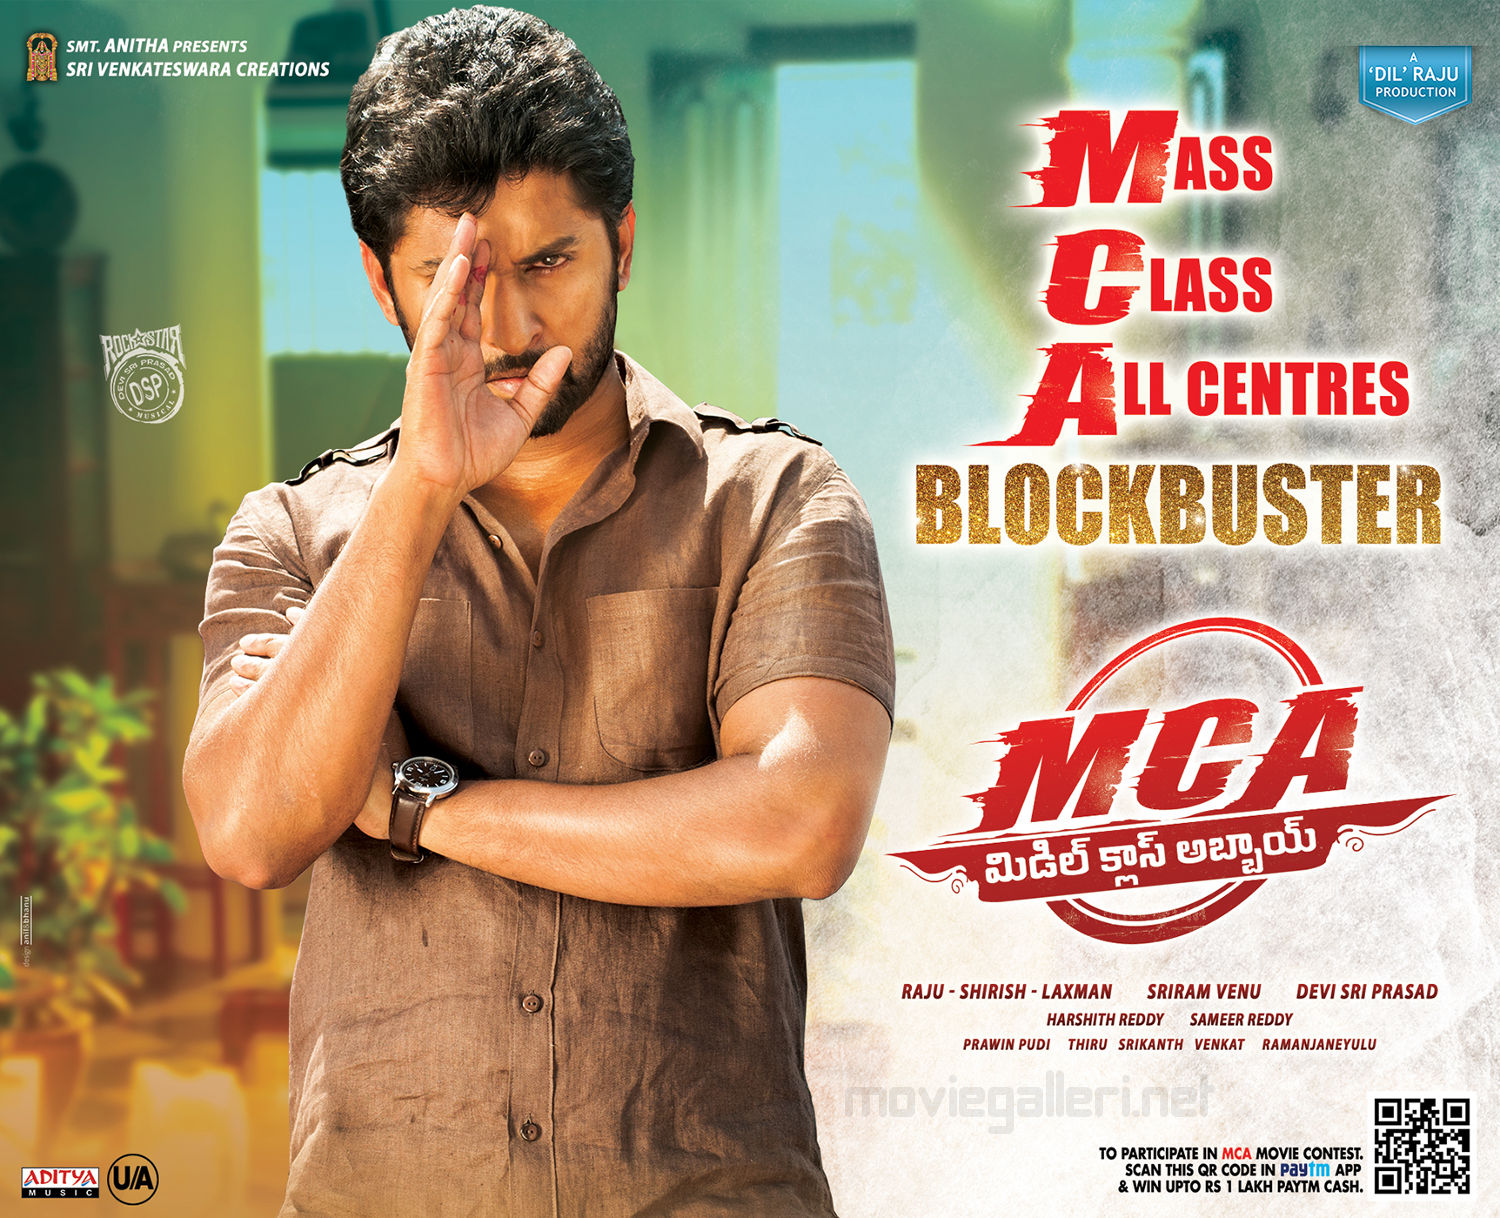 Actor Nani MCA Middle Class Abbayi Movie Mass Class Allcentres Blockbuster Wallpapers